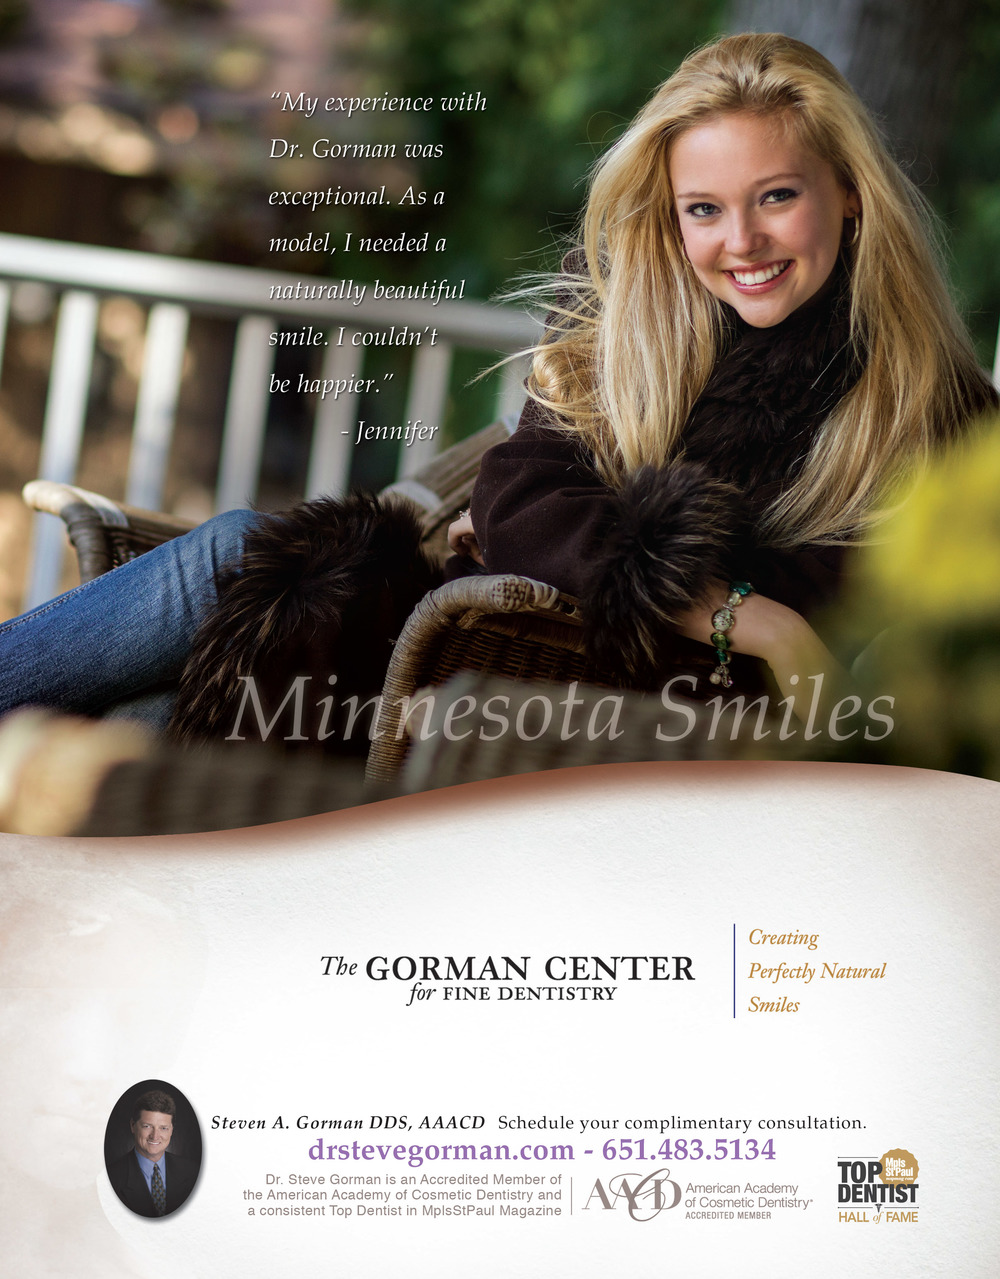 The Gorman Center of Fine Dentistry